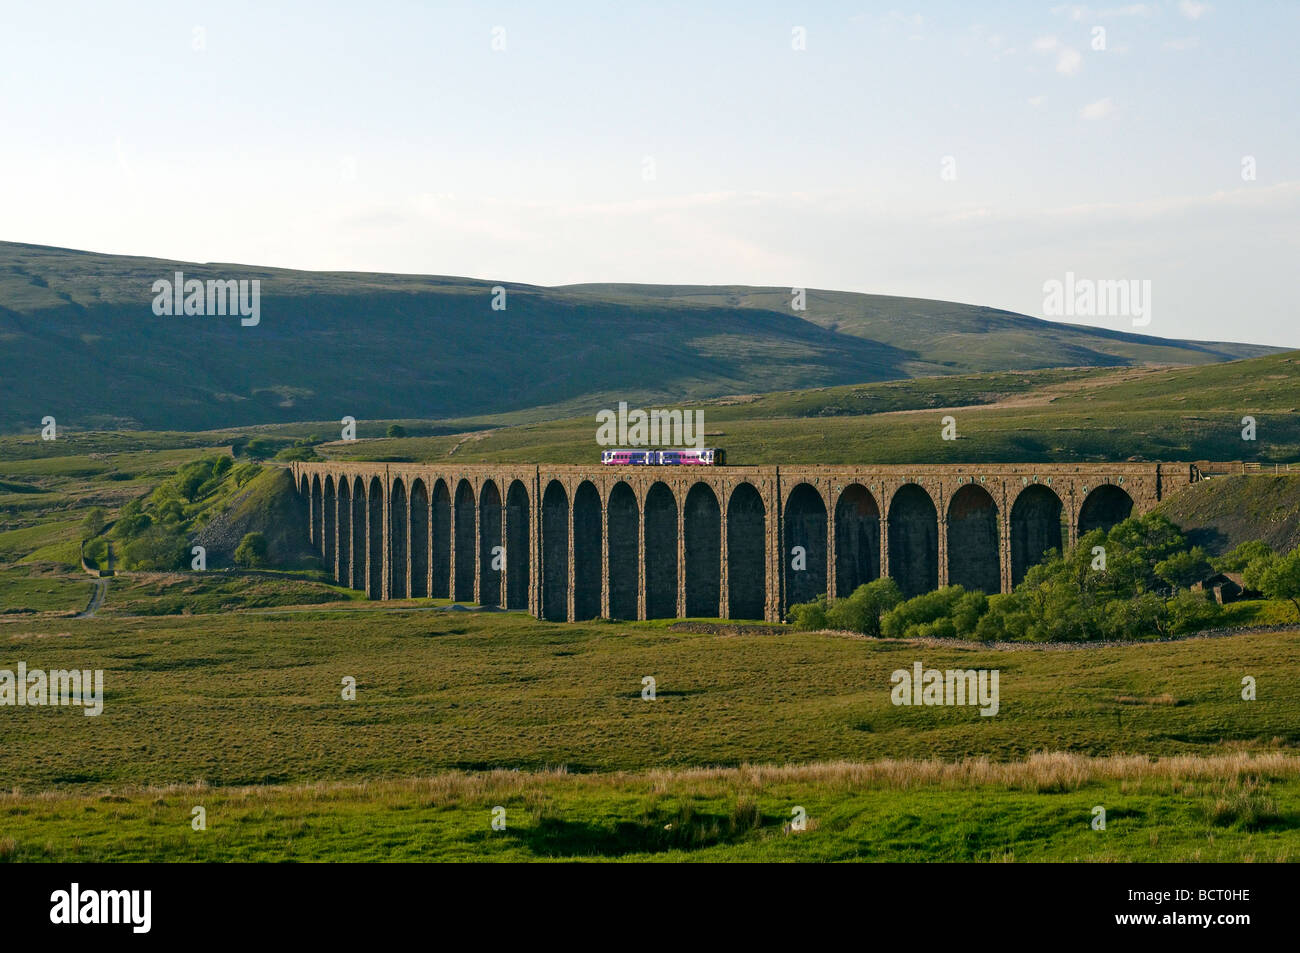 The Ribblehead Viaduct in the Yorkshire Dales with a small train crossing the viaduct - Stock Image